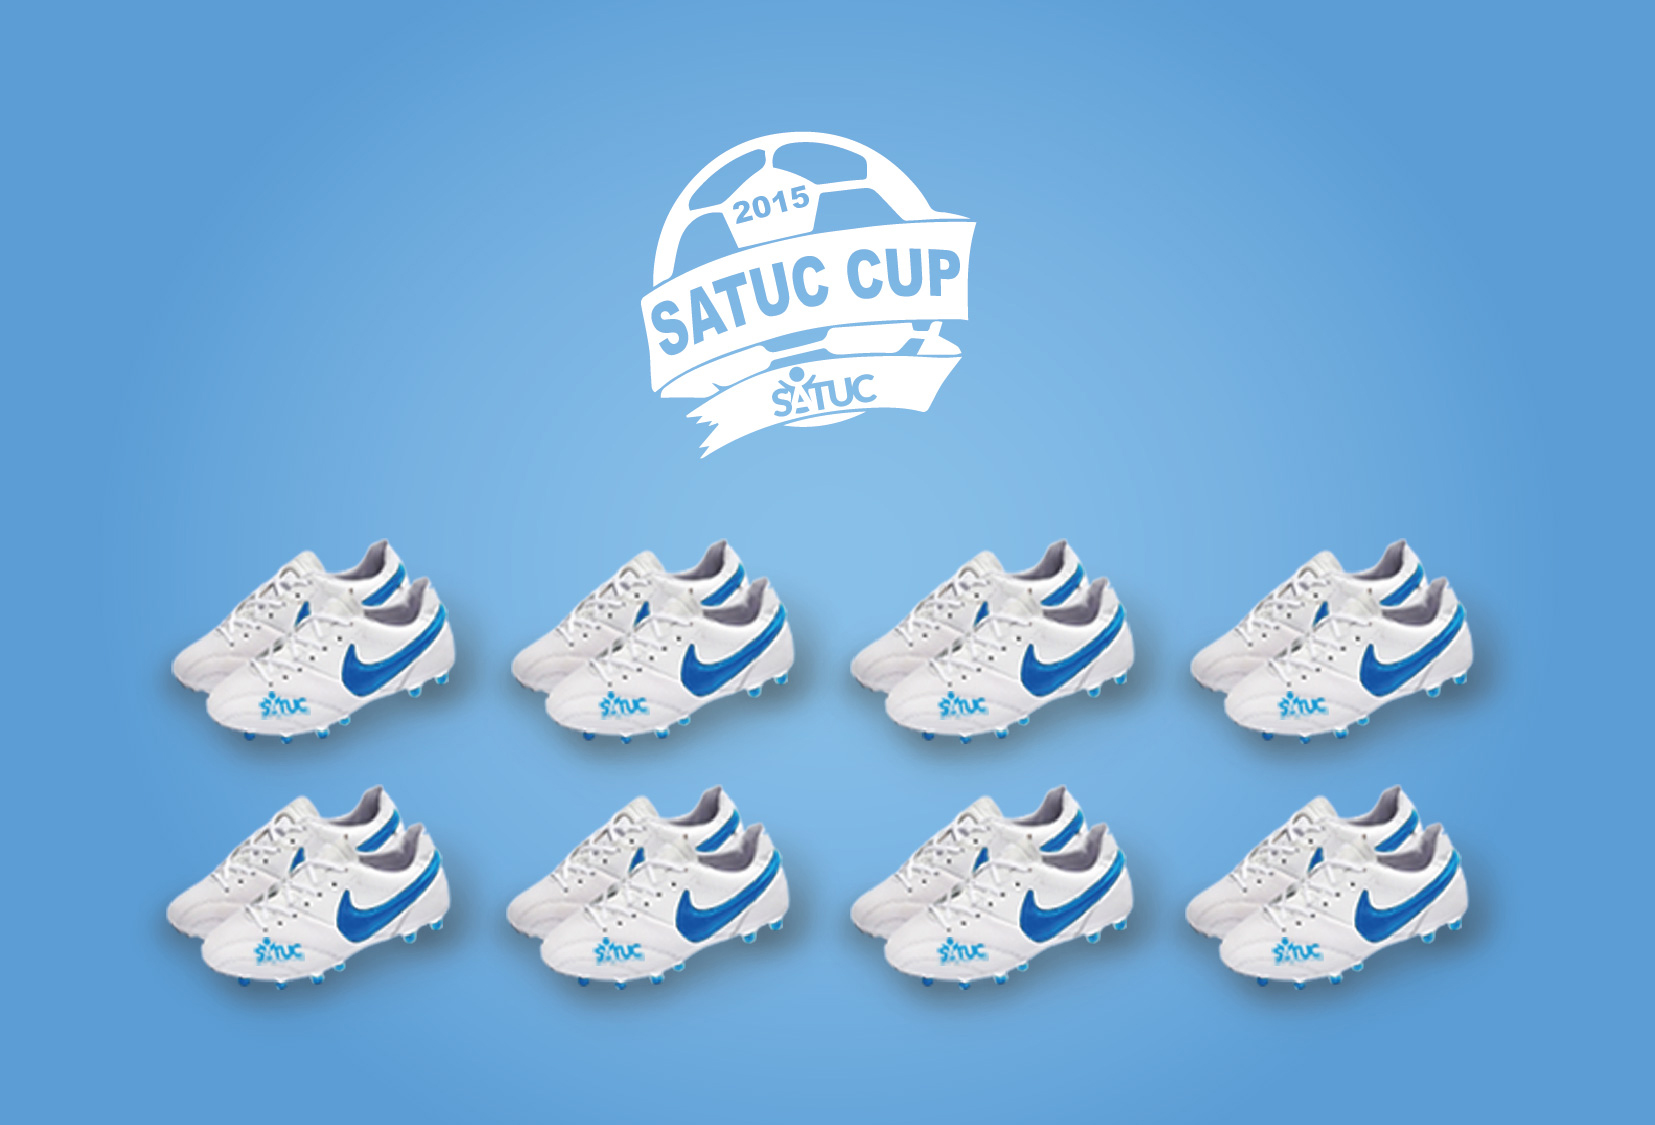 SATUC Football Cup 2015 – Branding